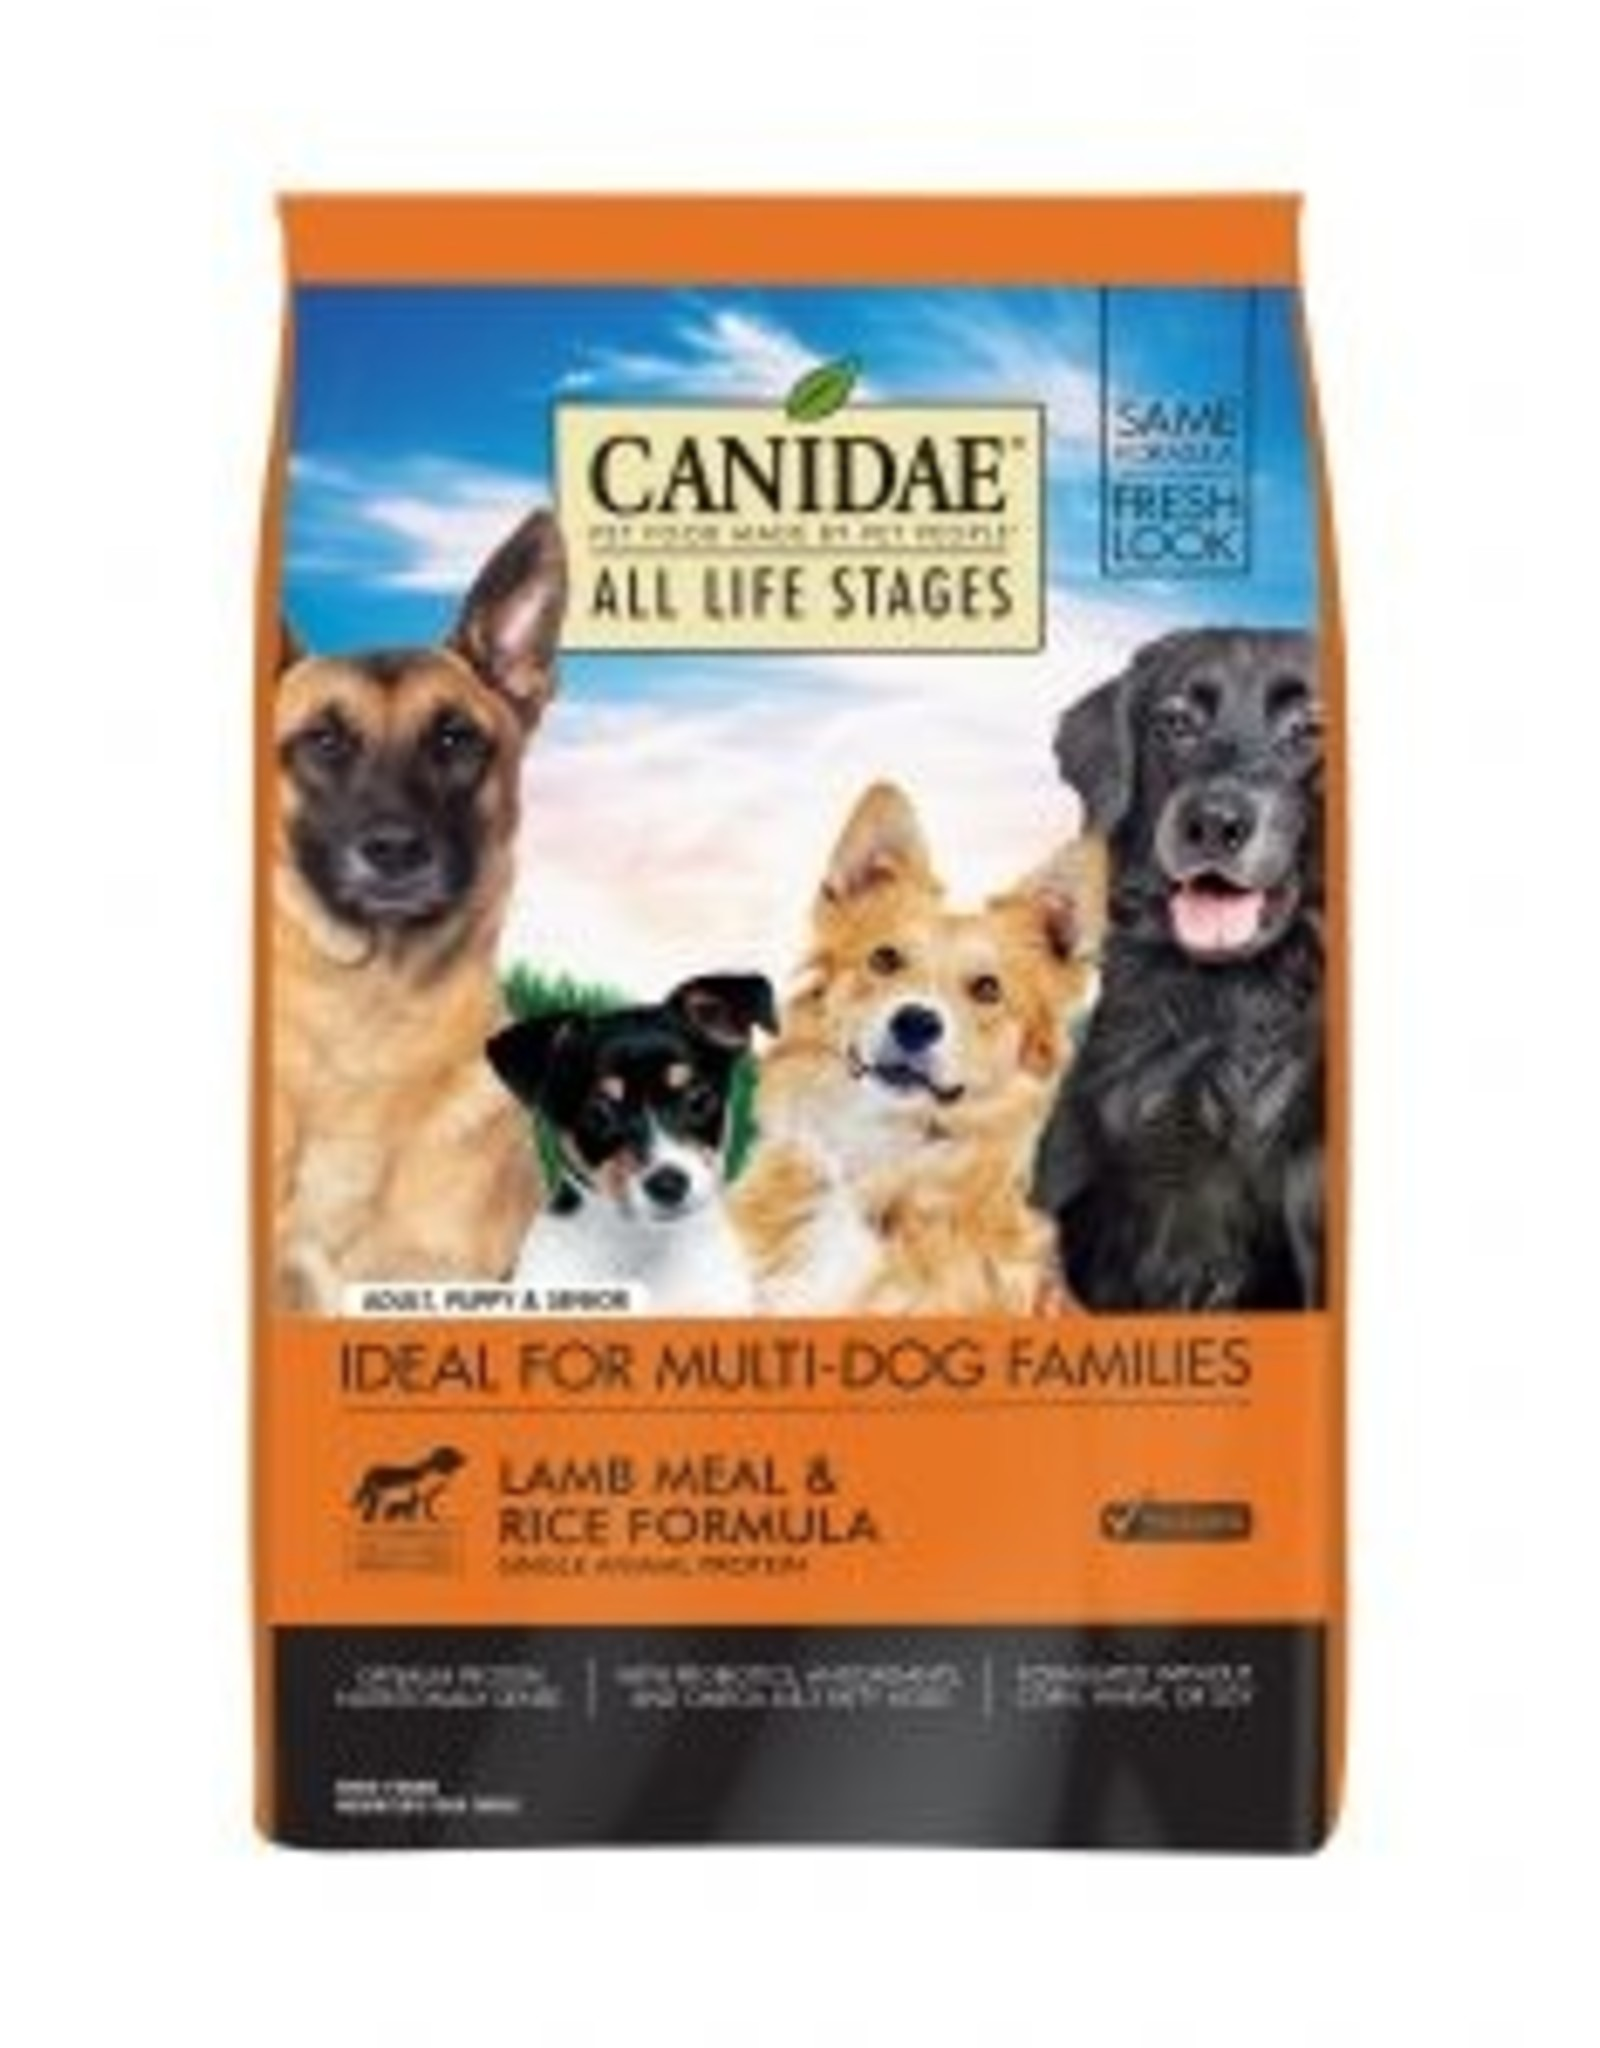 CANIDAE Dog All Life Stages with Lamb - Whole Grain 30lb